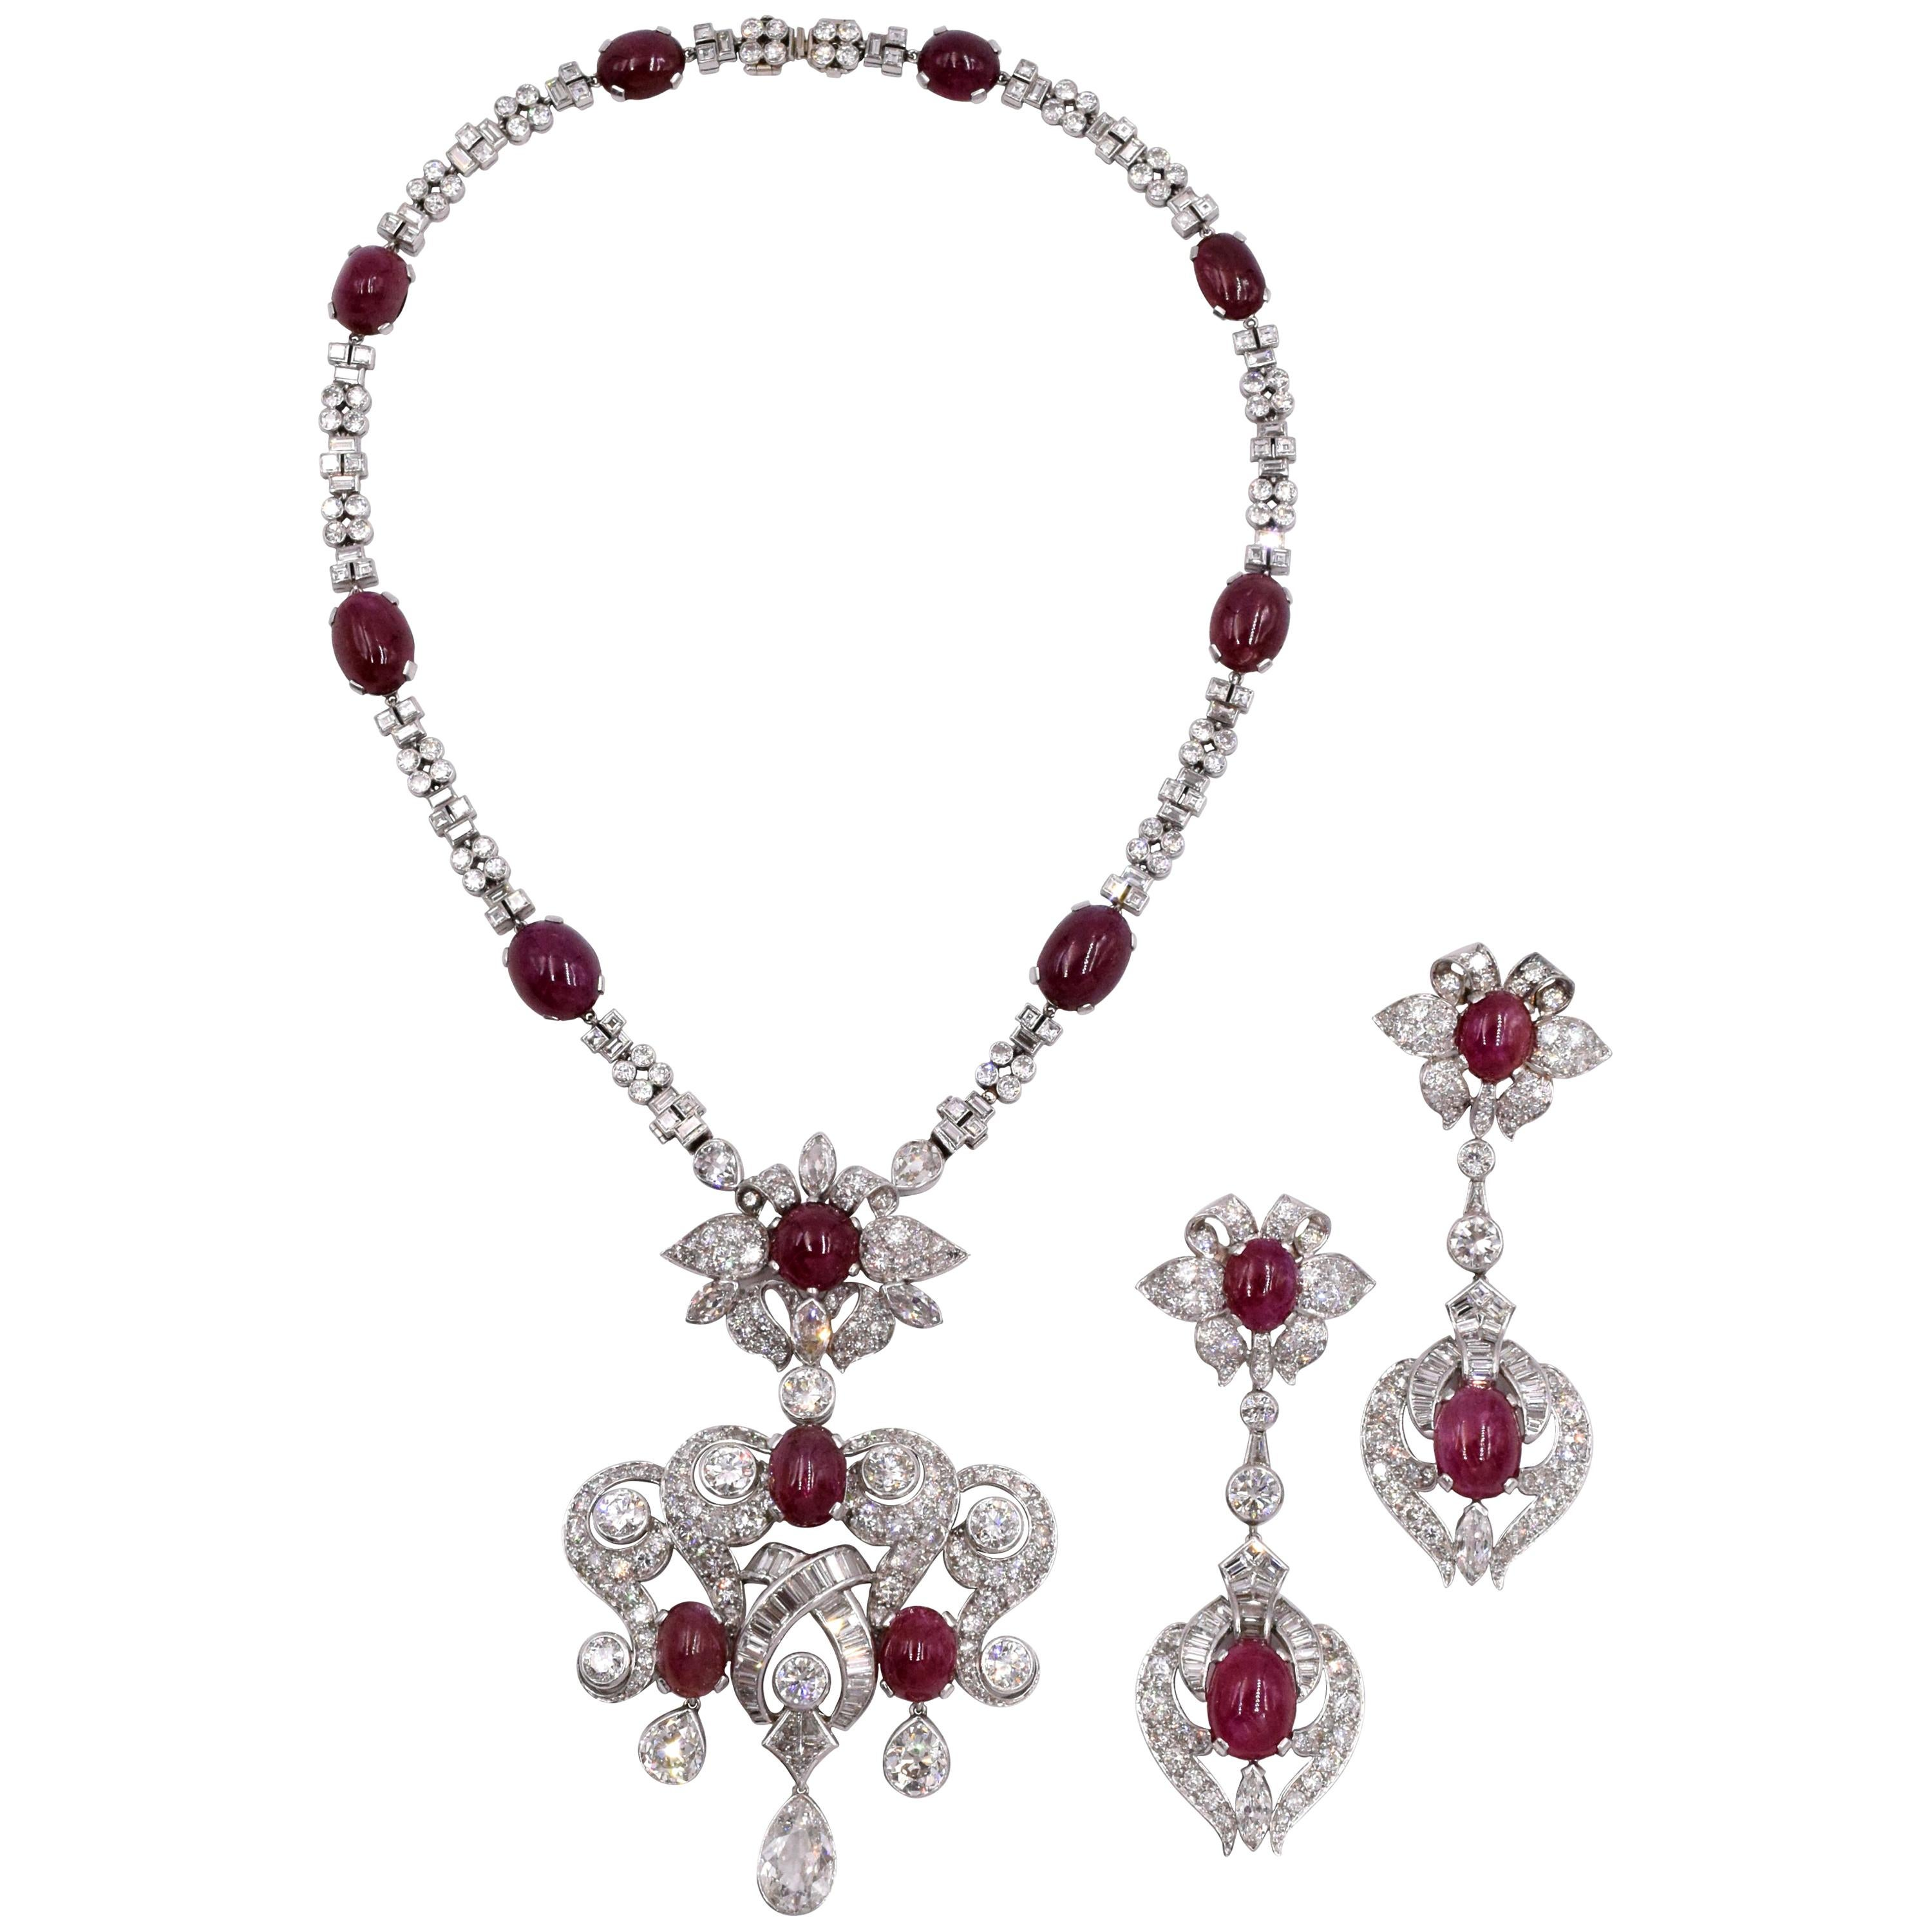 1940s French Set of Diamond and Burma No Heat Ruby Necklace and Earrings